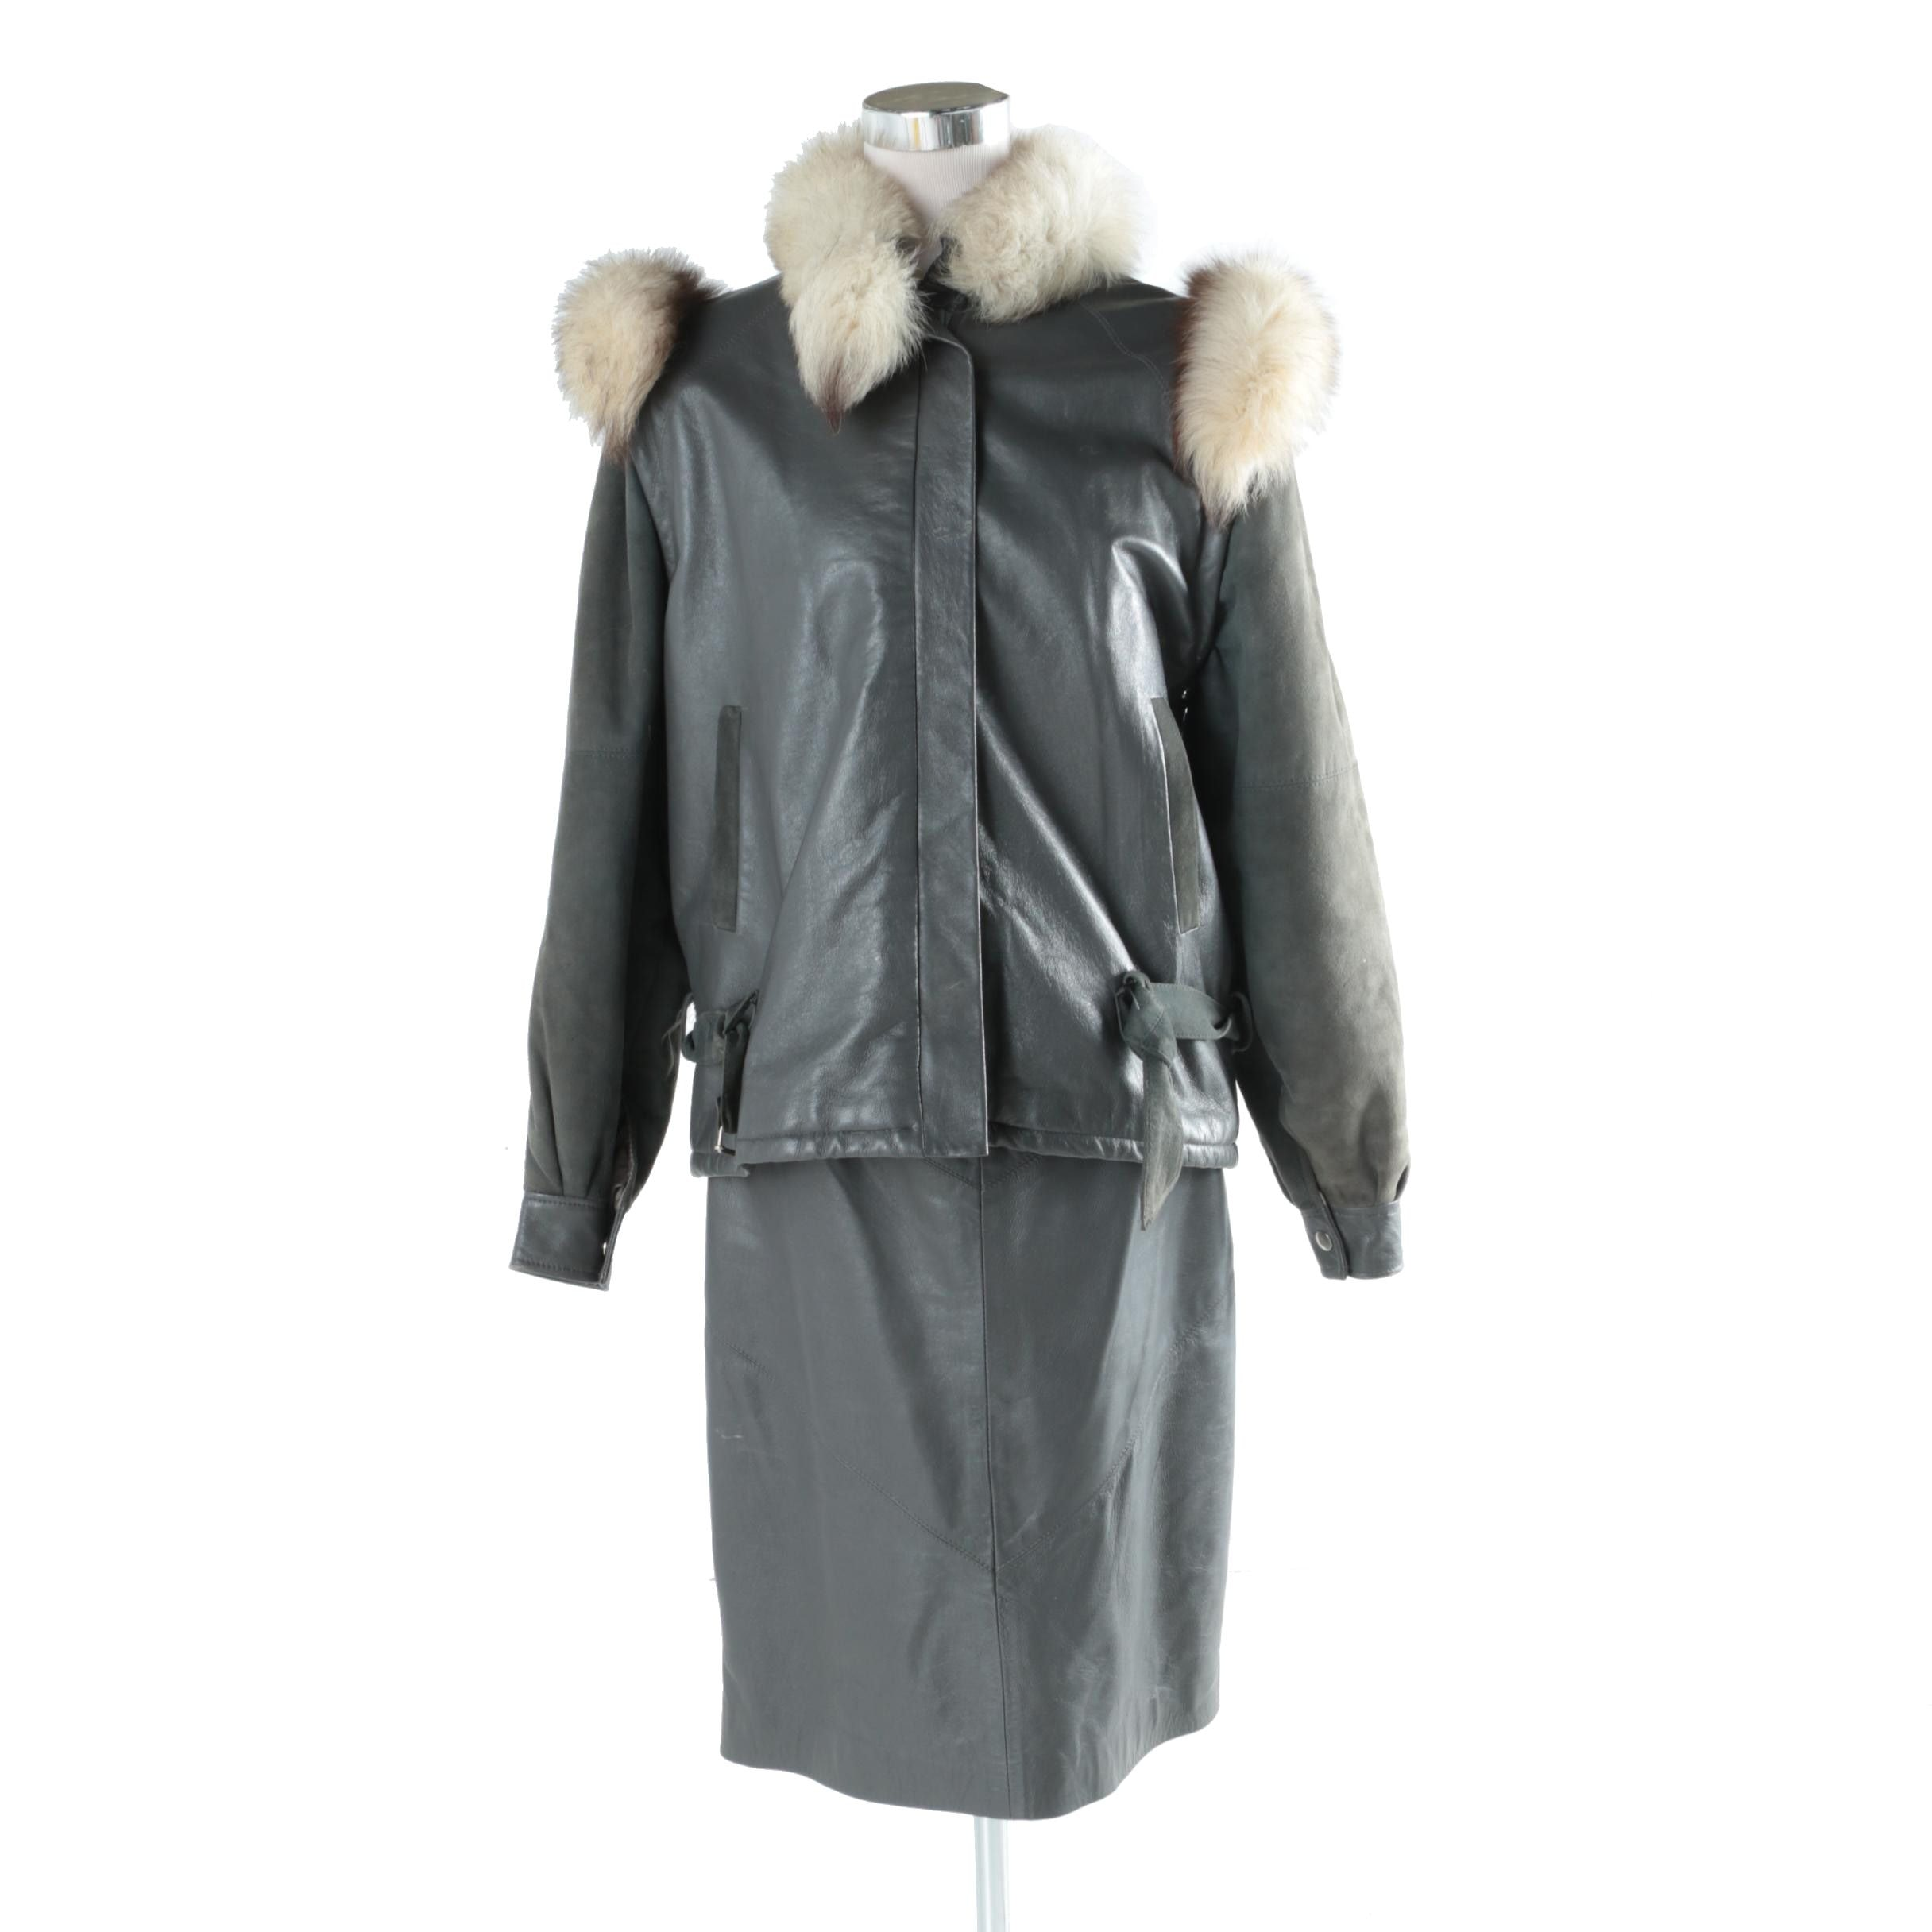 Women's Leather and Fur Jacket and Leather Skirt